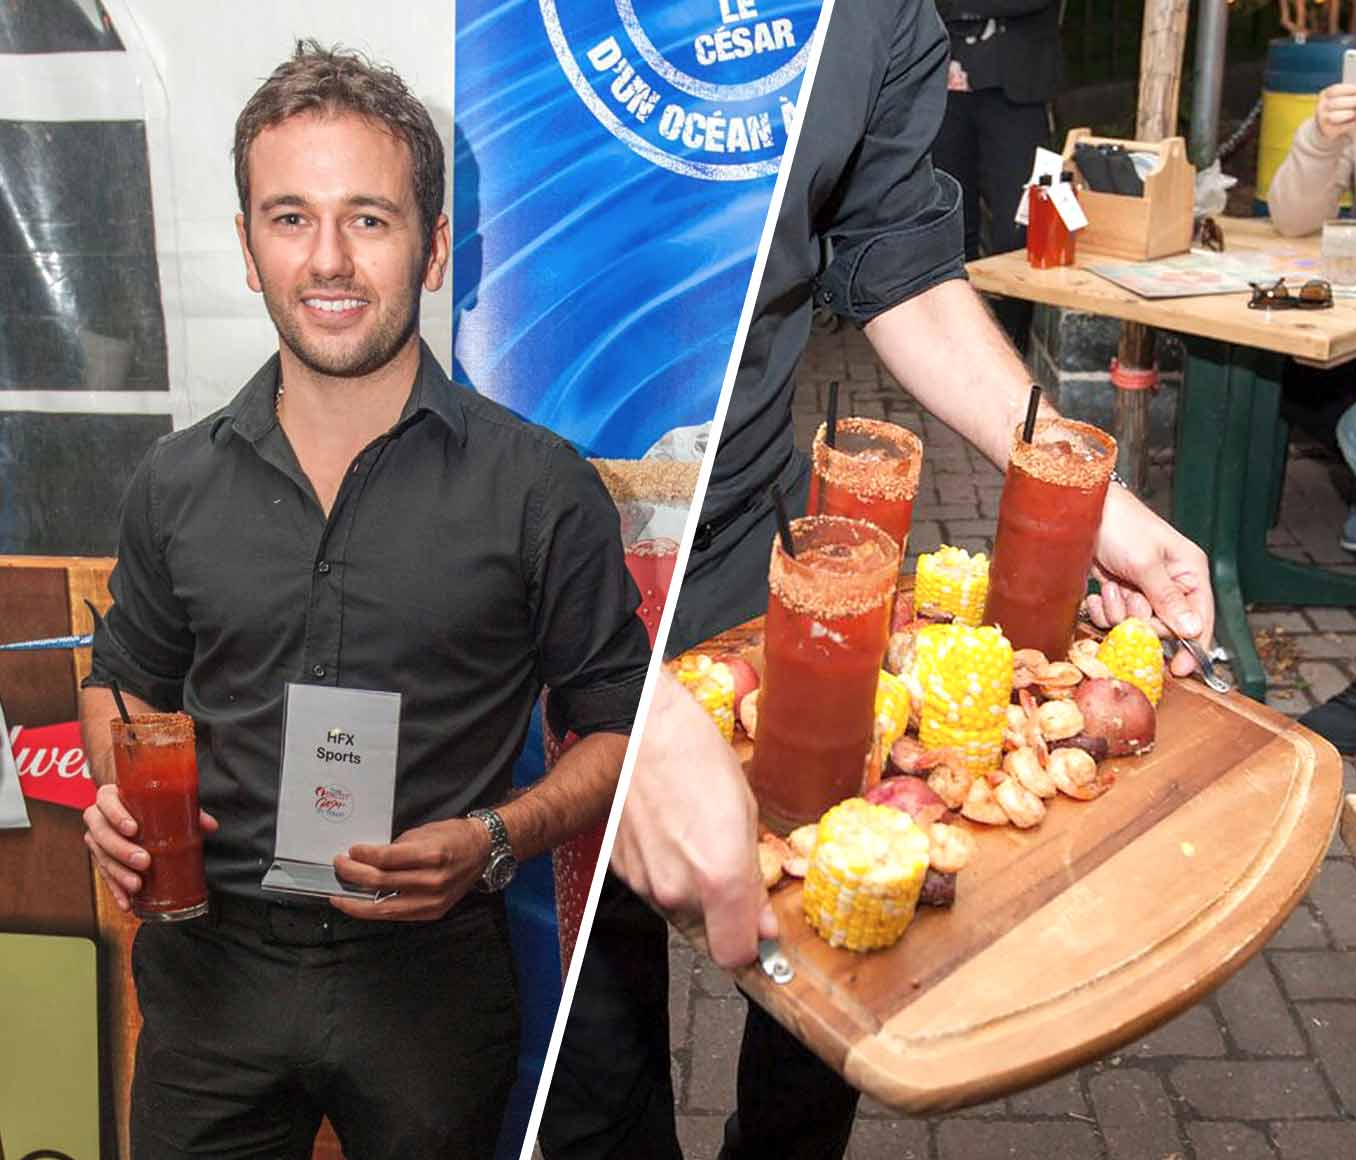 WINNER THE BEST CAESAR IN NOVA SCOTIA